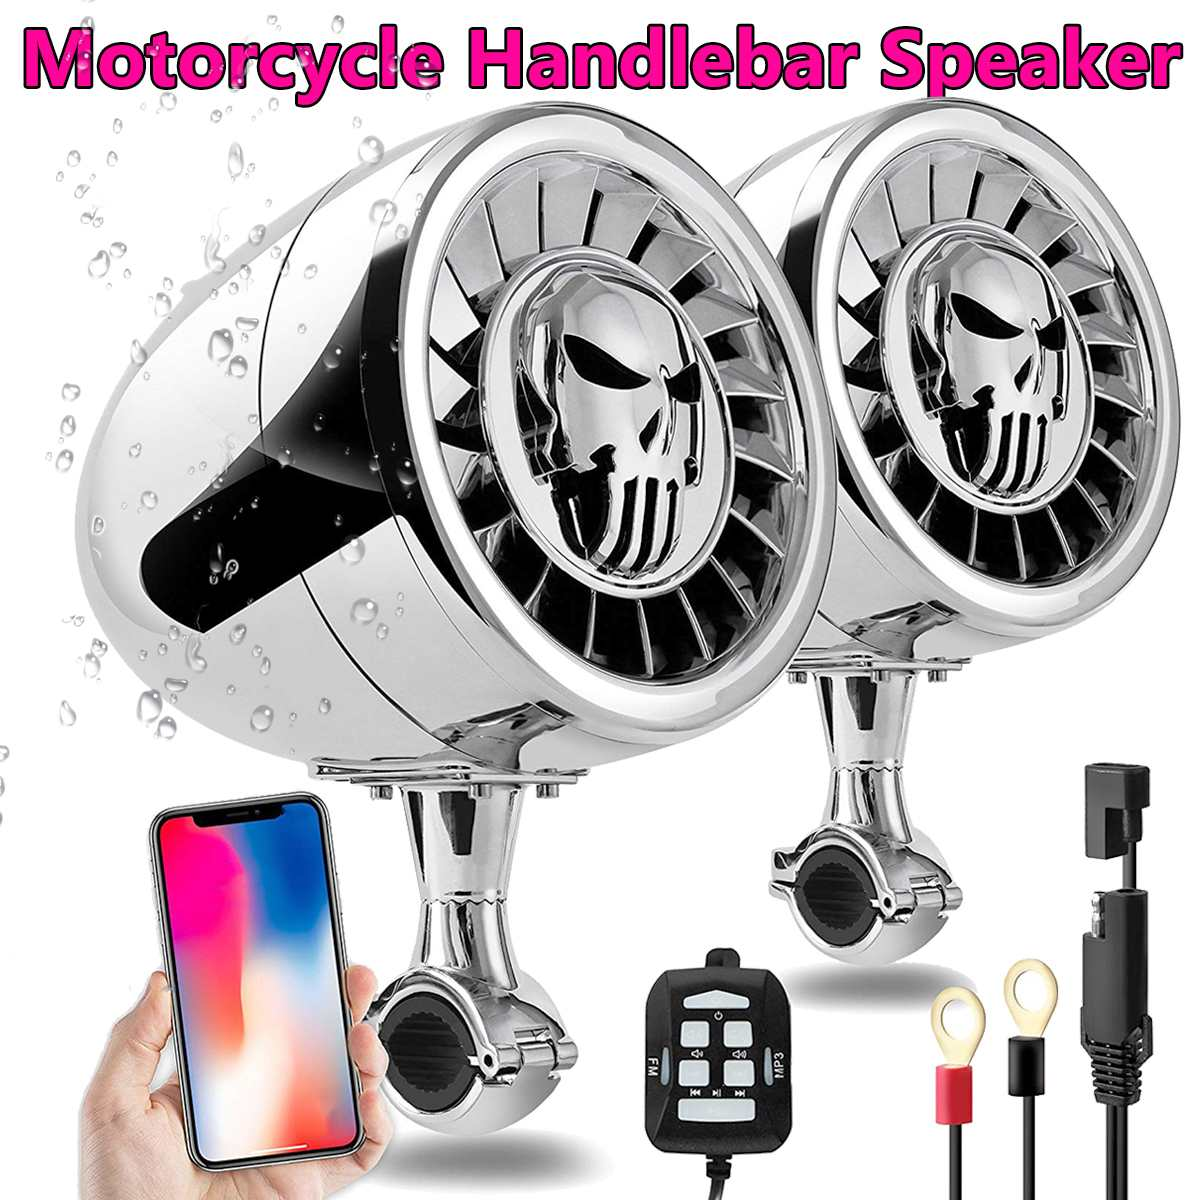 600W 5 Pollici MP3 Musica Audio Player Altoparlanti bluetooth Per Moto Impermeabile Stereo Portatile Motos Audio Amp Sistema